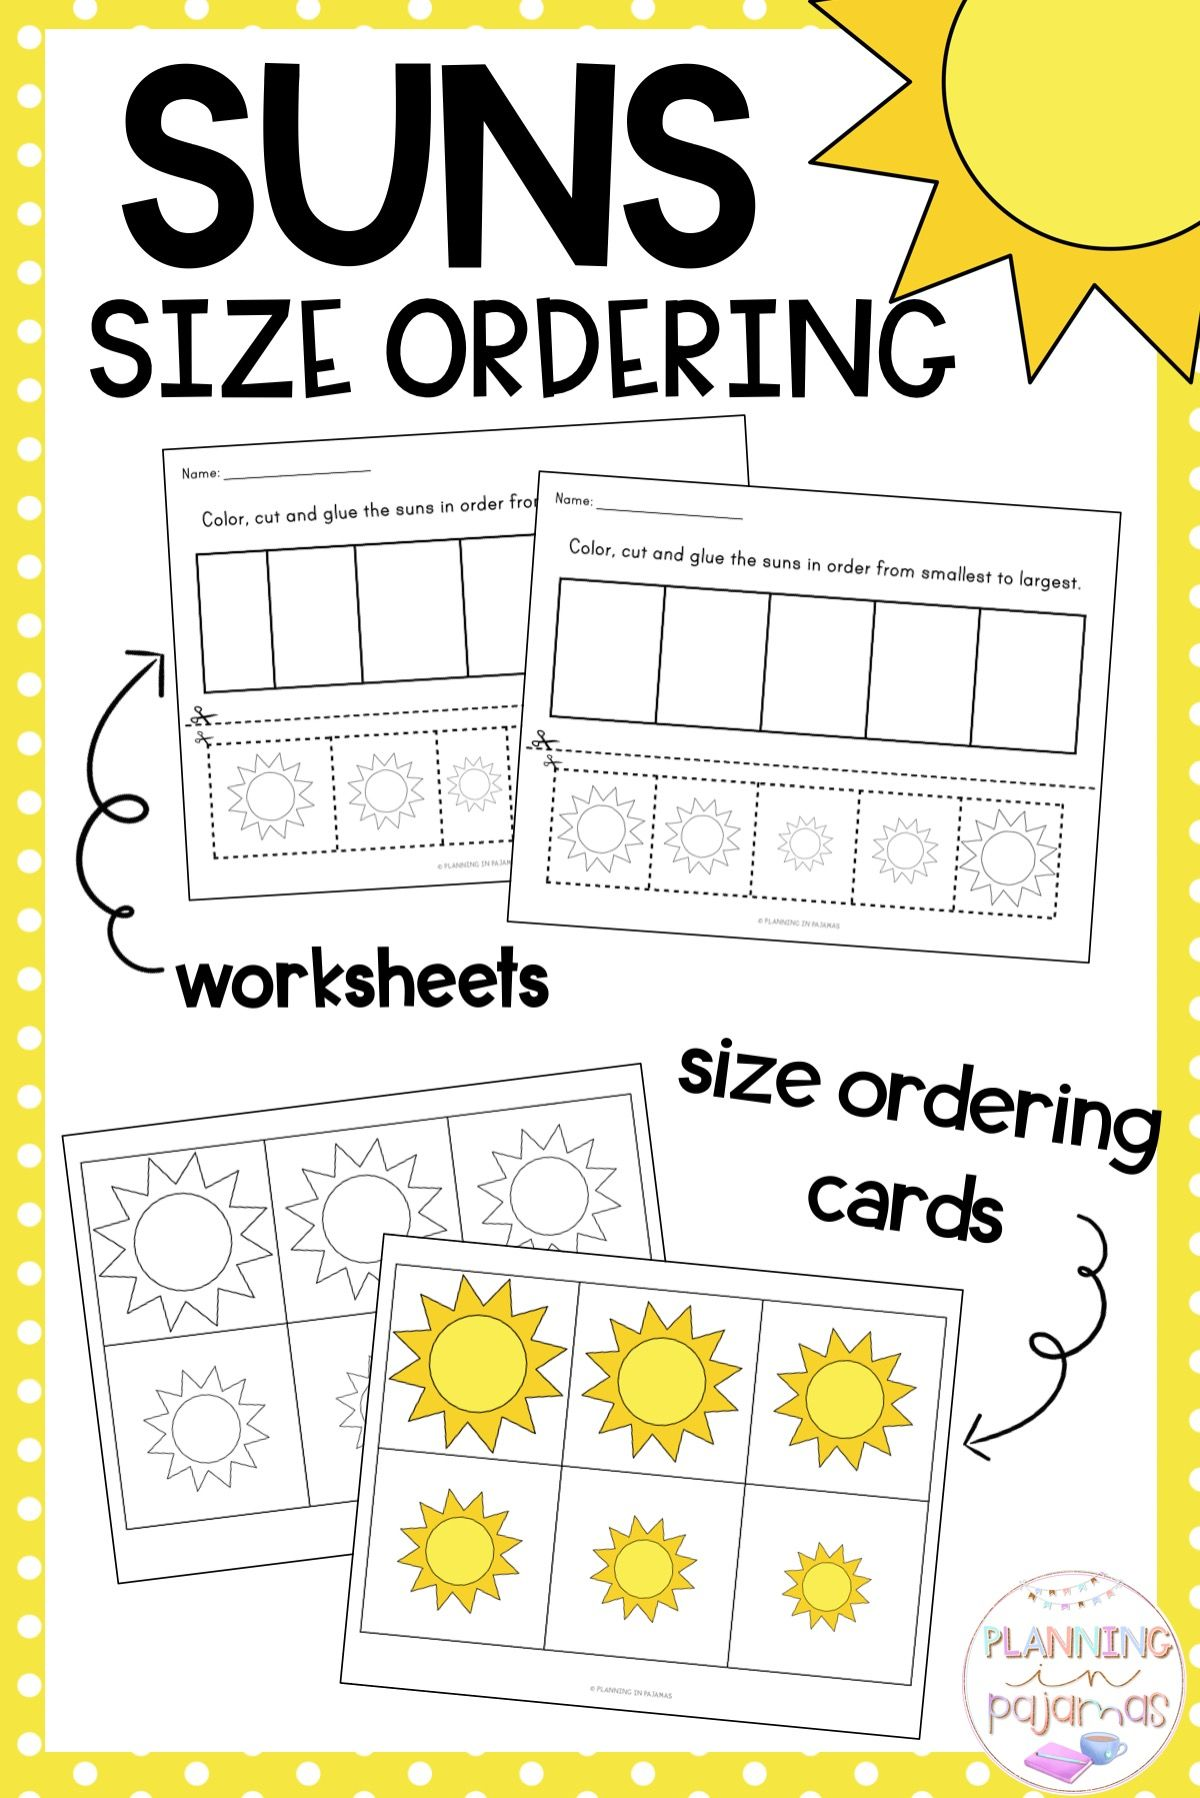 Size Ordering Activity To Include In A Summer Or Weather Theme Includes 2 Worksheets And 2 S Kindergarten Math Worksheets Kindergarten Centers Space Preschool [ 1798 x 1200 Pixel ]